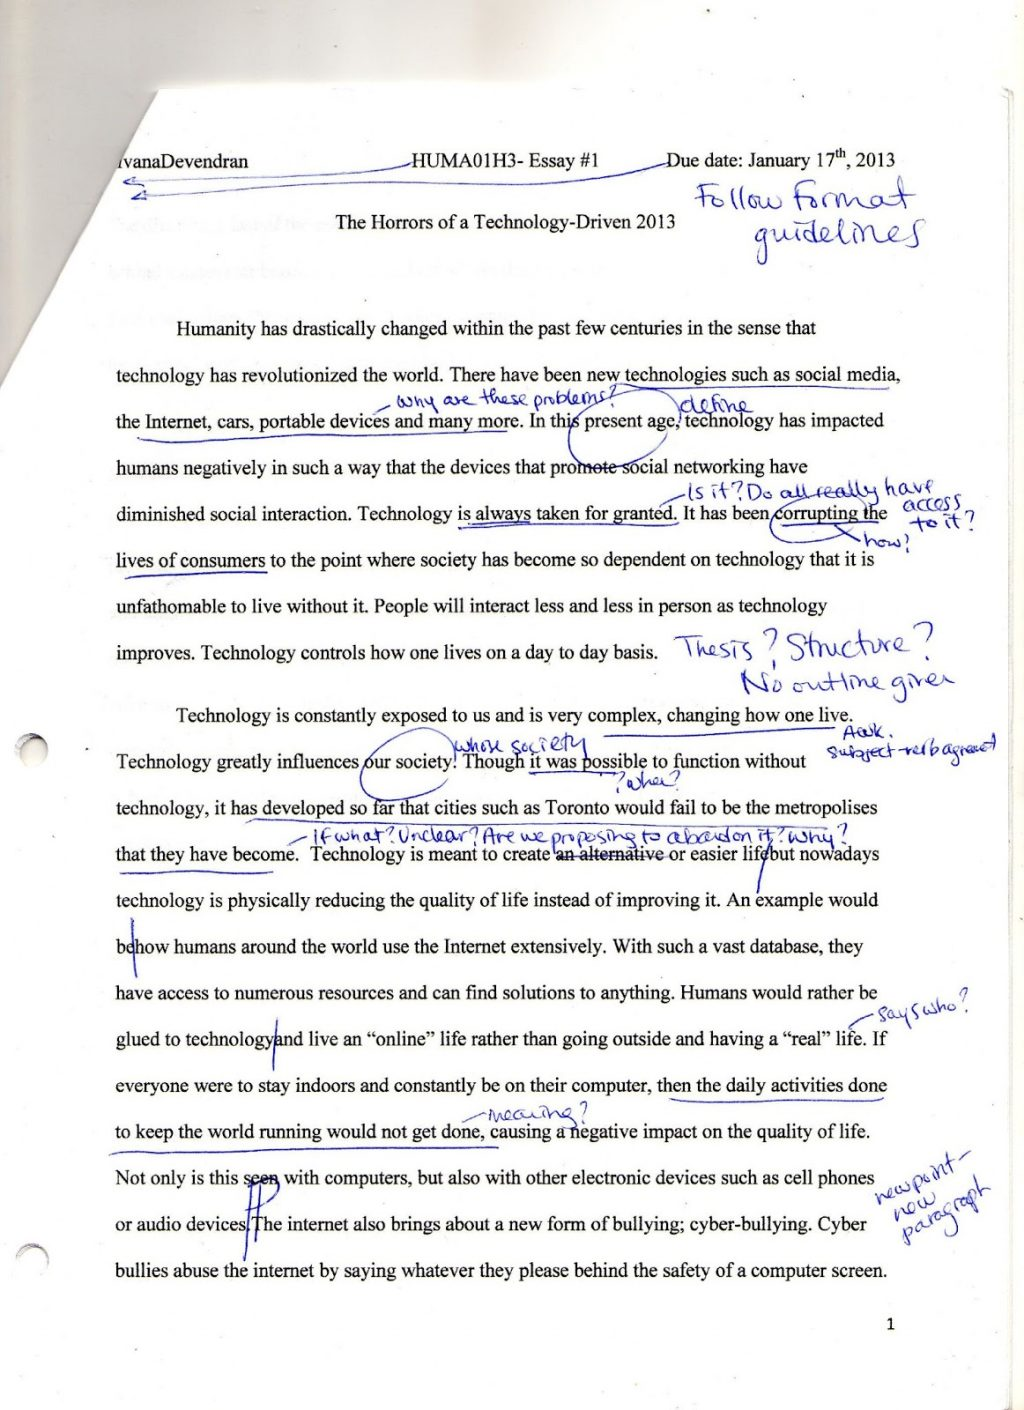 012 Popular Music Researchr Topics Essay Img008 What Should You Avoid In Writing Humanities Appreciation Questions Classical History Persuasive20 1024x1410 Fantastic Research Paper Full